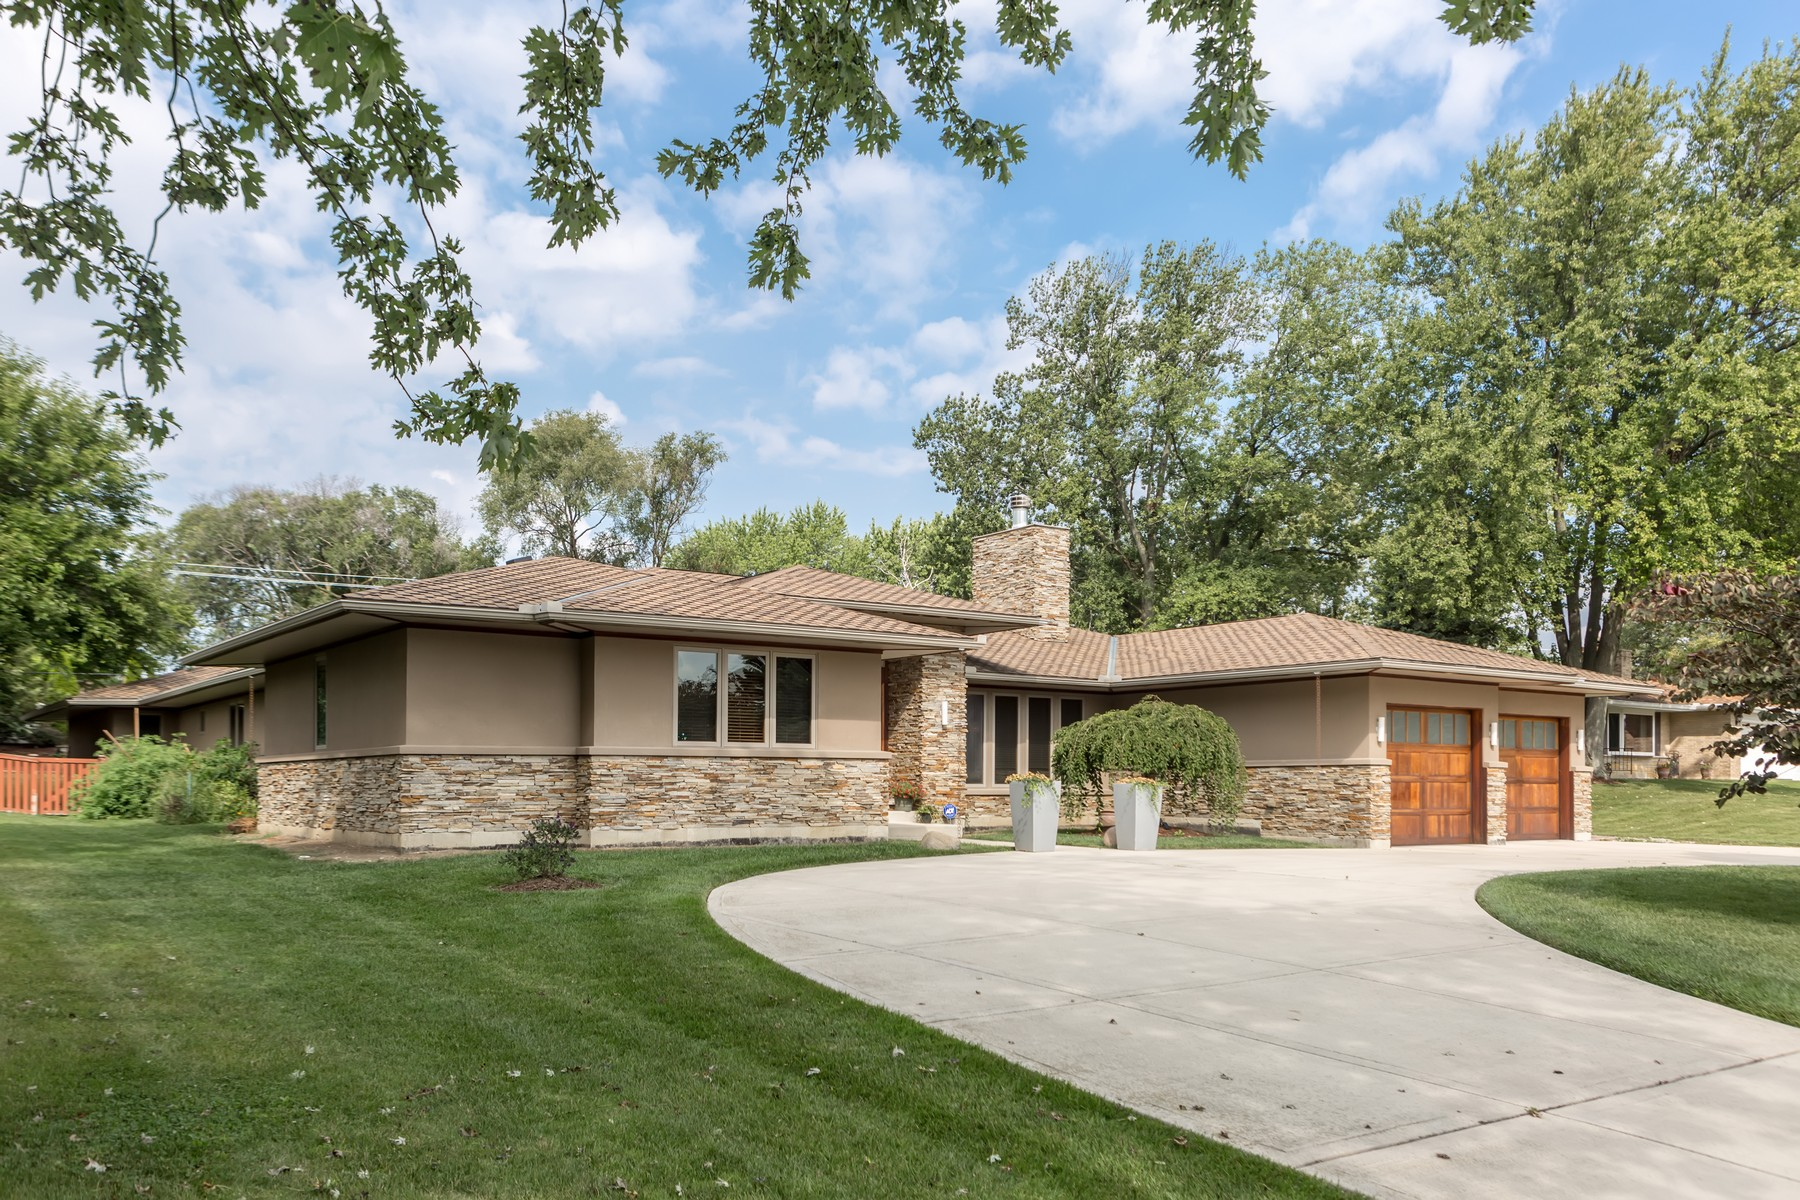 Maison unifamiliale pour l Vente à Stunning Ranch 8216 Tennesse Avenue, Willowbrook, Illinois, 60527 États-Unis